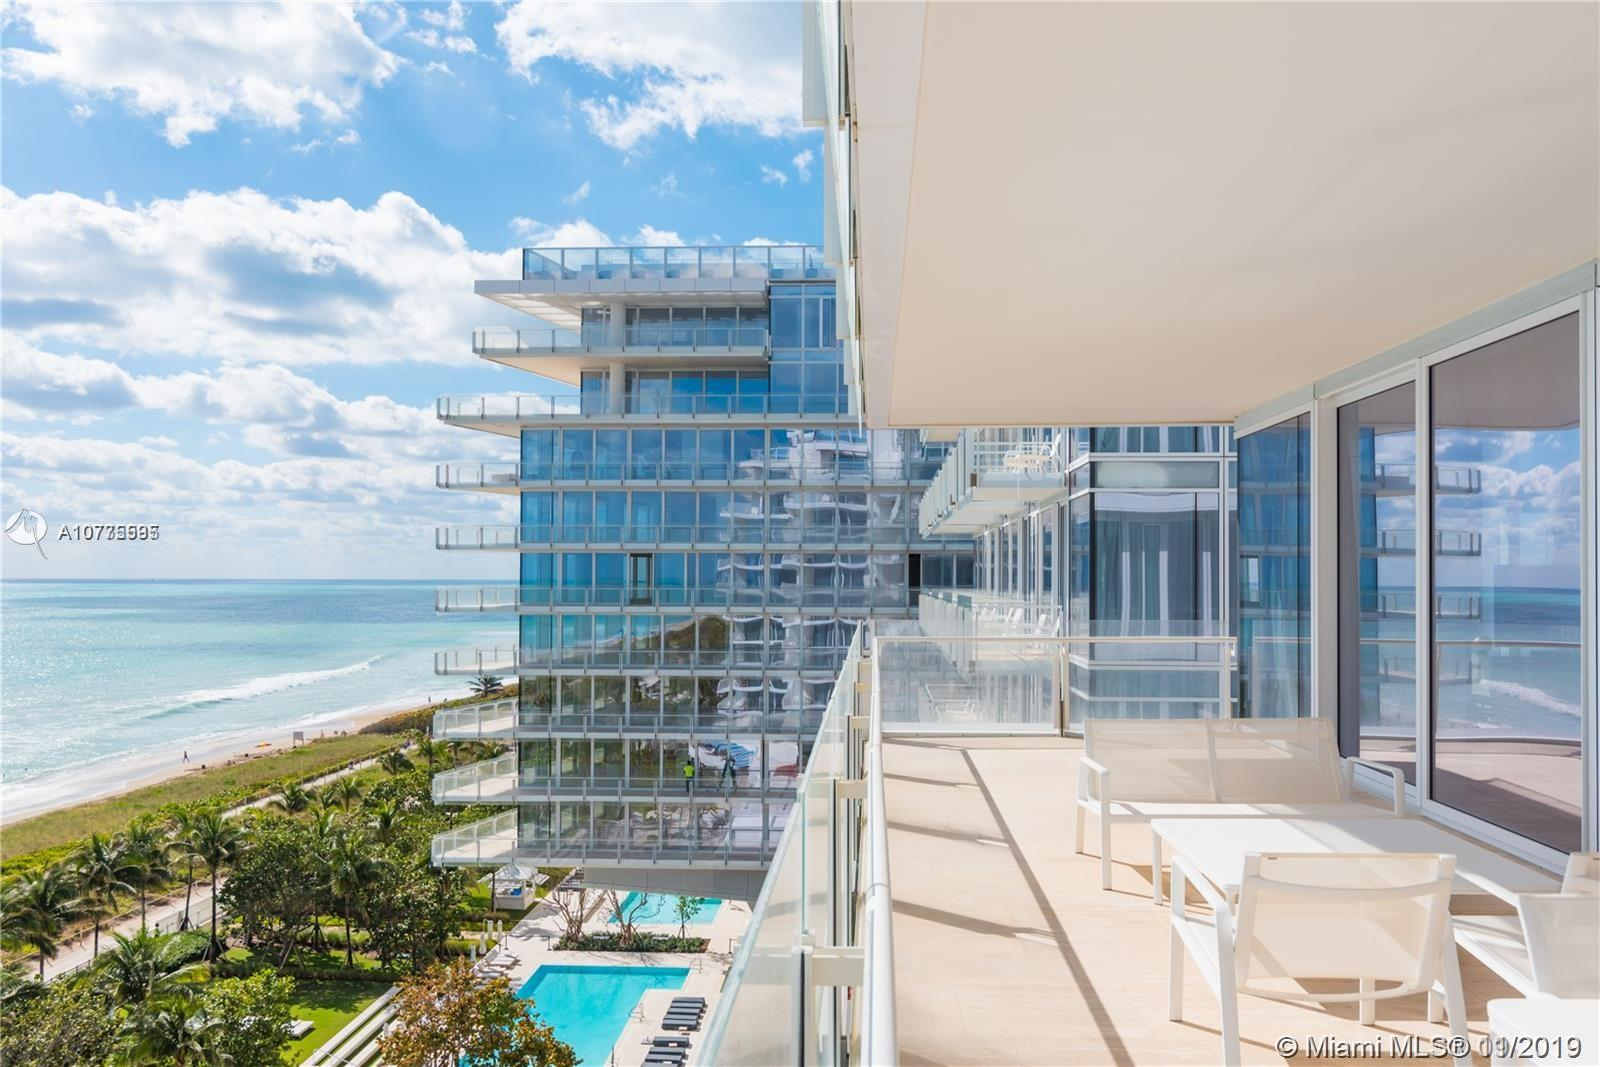 9111 Collins Ave, Unit #N-1013 Luxury Real Estate